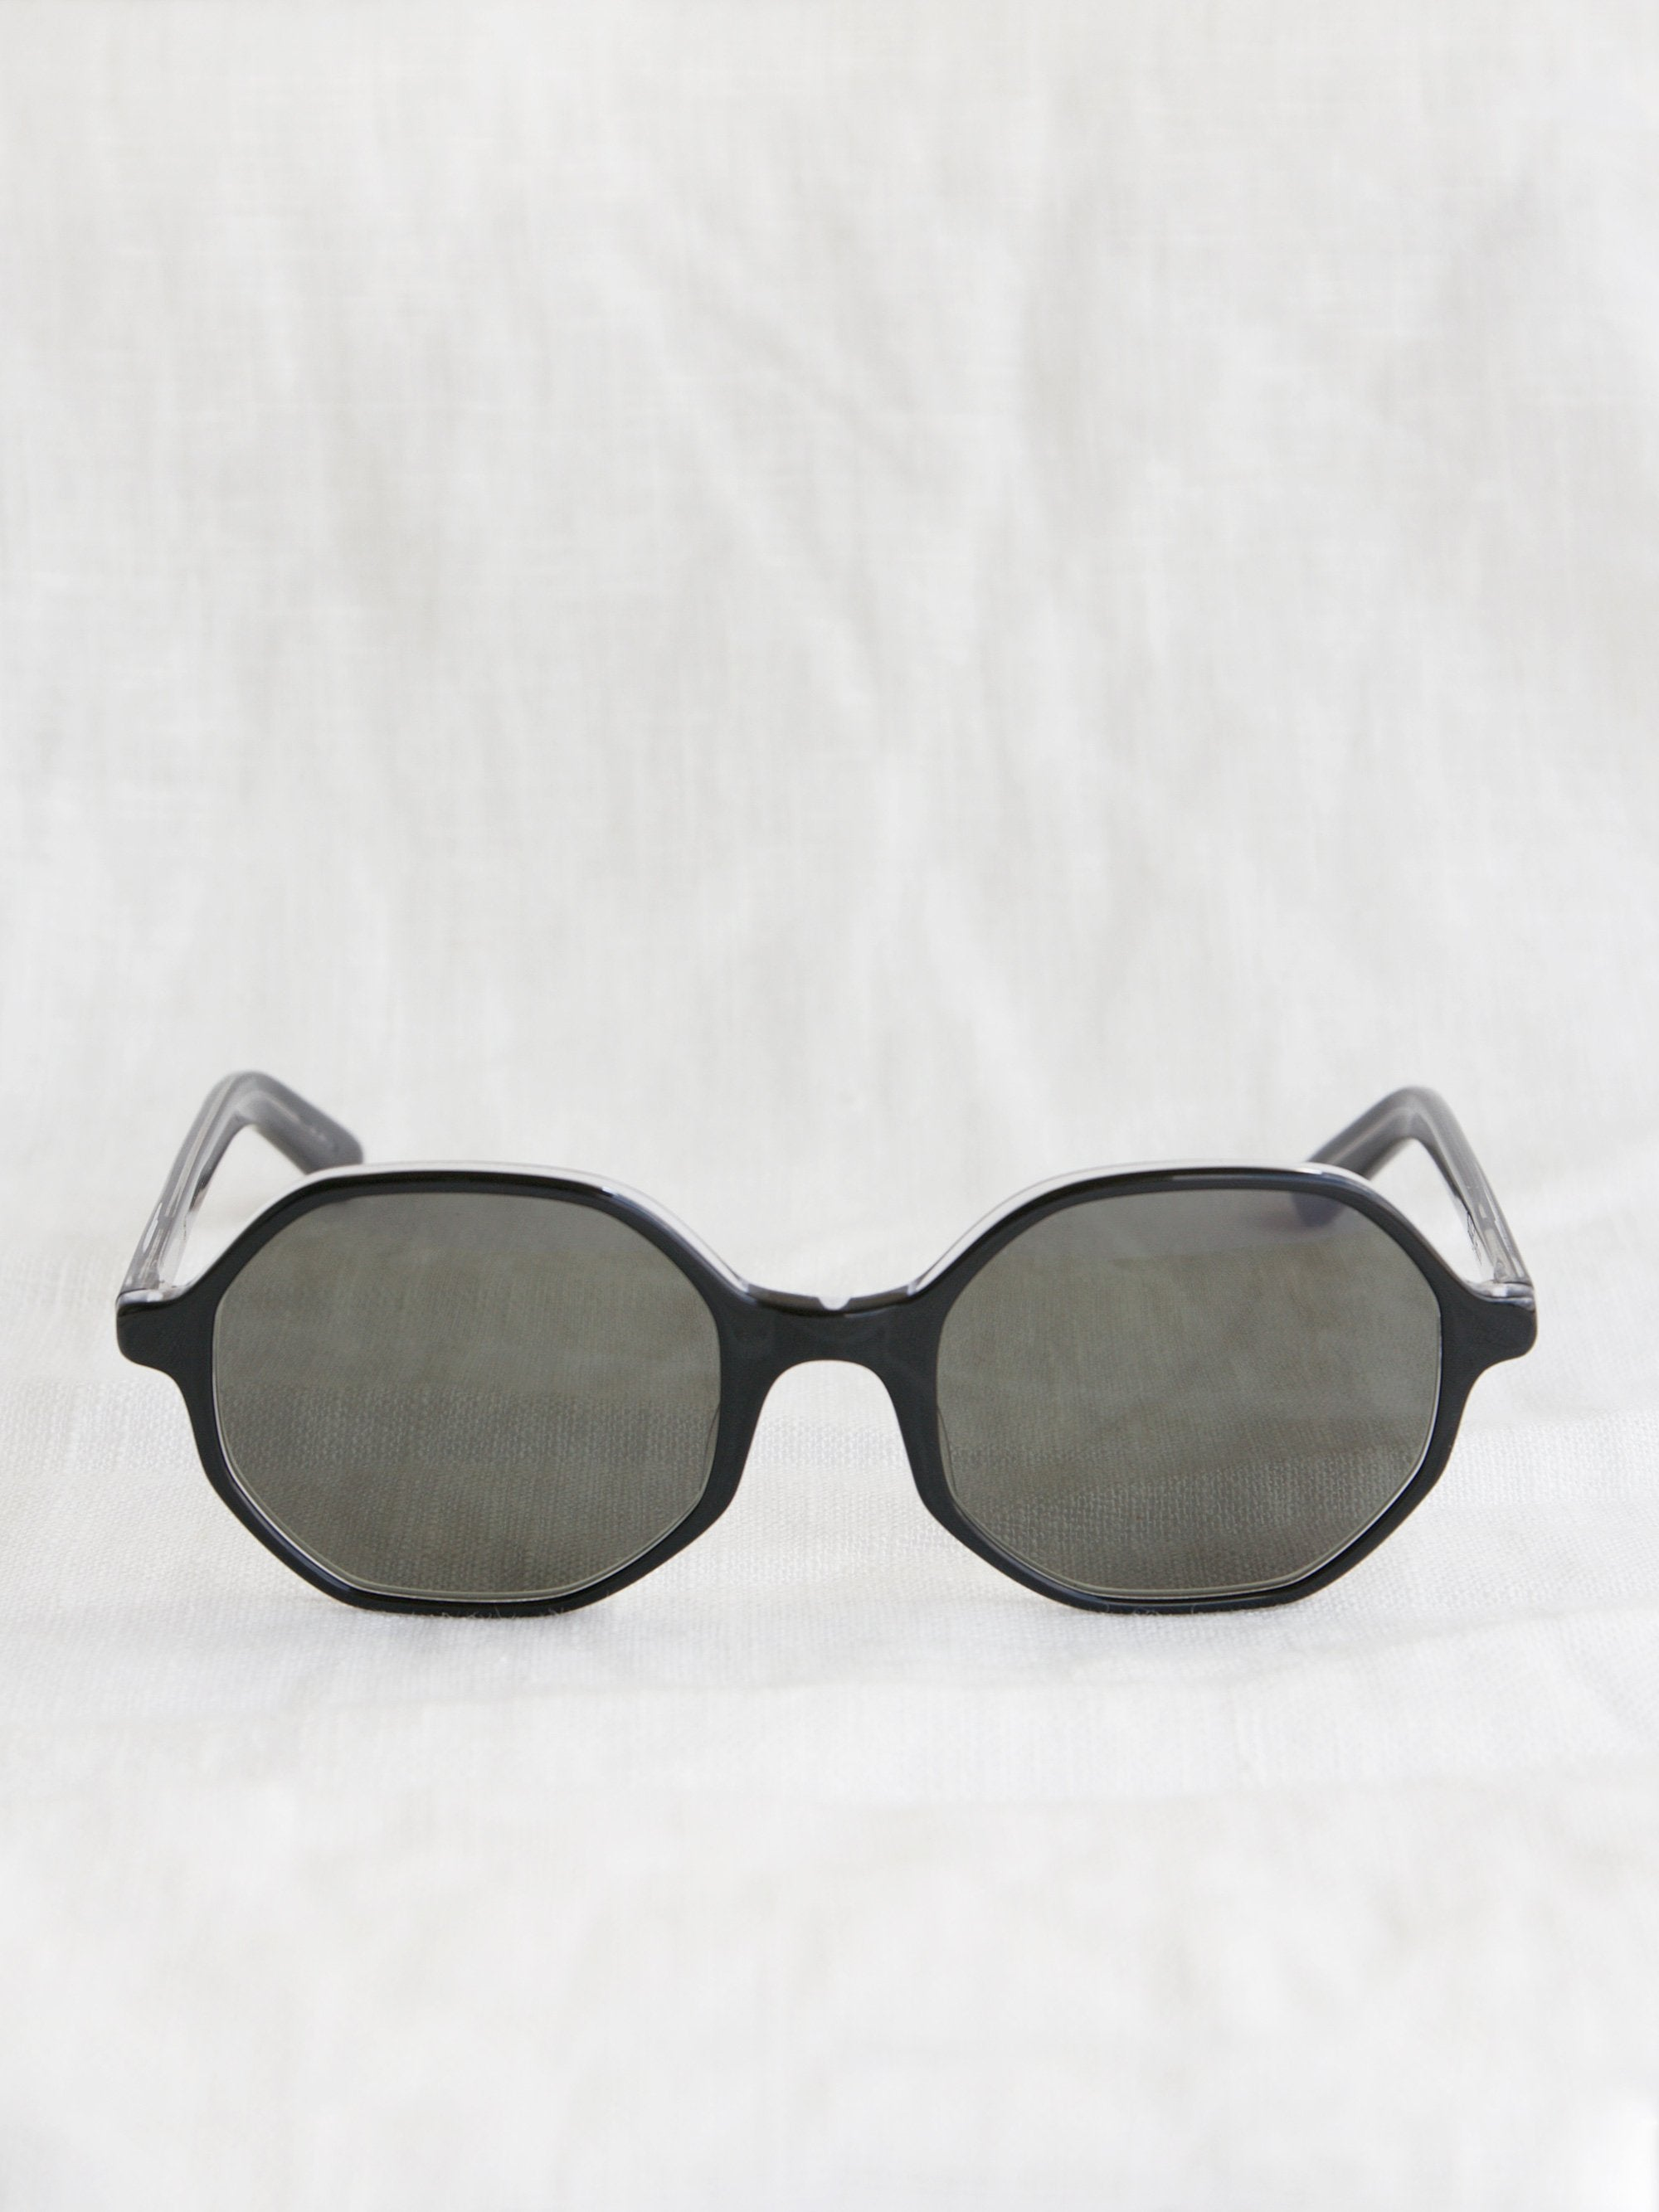 Namu Shop - Buddy Optical a - Black/Quartz